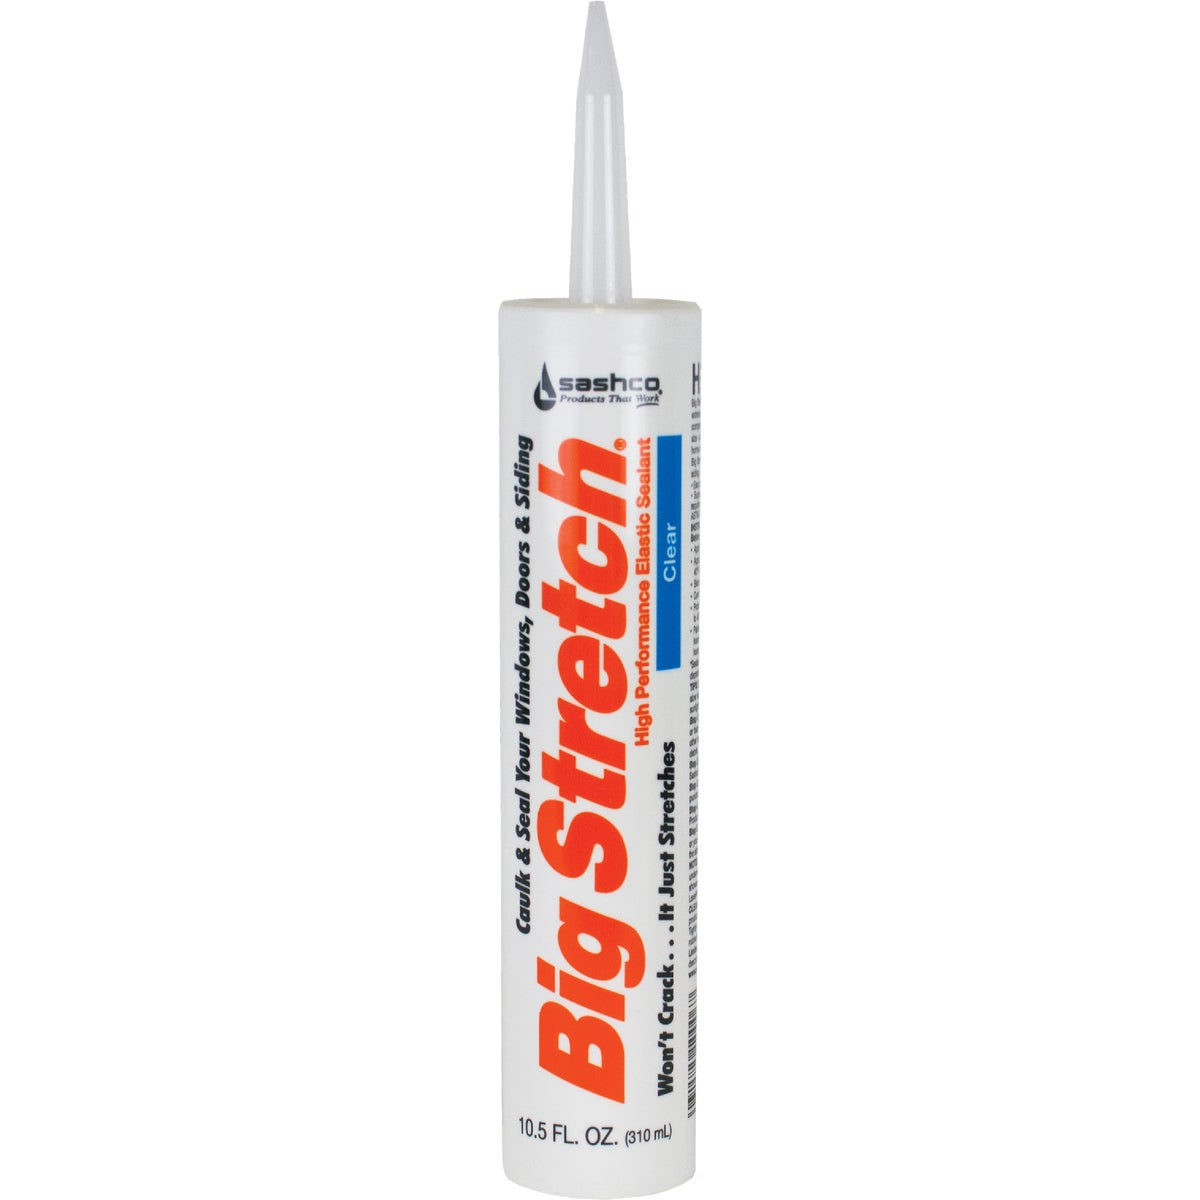 CLEAR ACRYLIC CAULK - 10006 by Sashco Sealants Inc